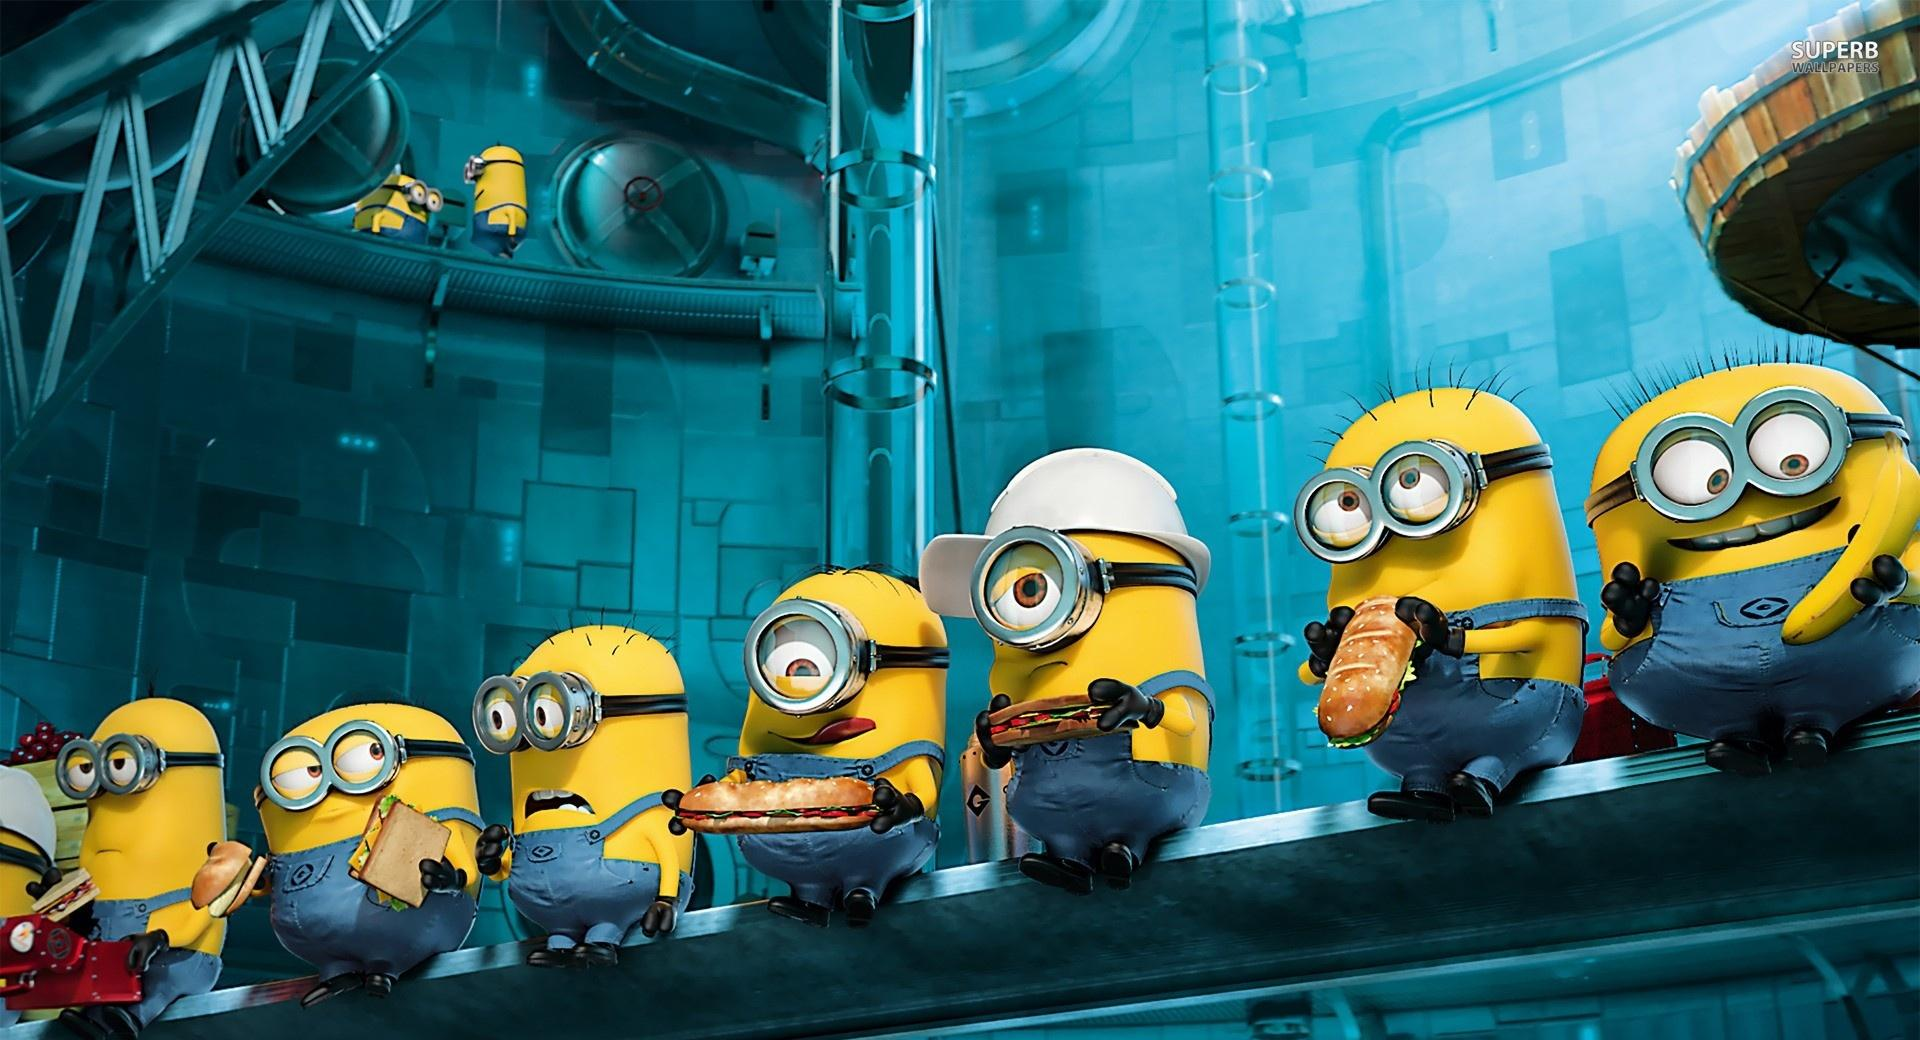 Despicable Me 2 Minions wallpapers HD quality